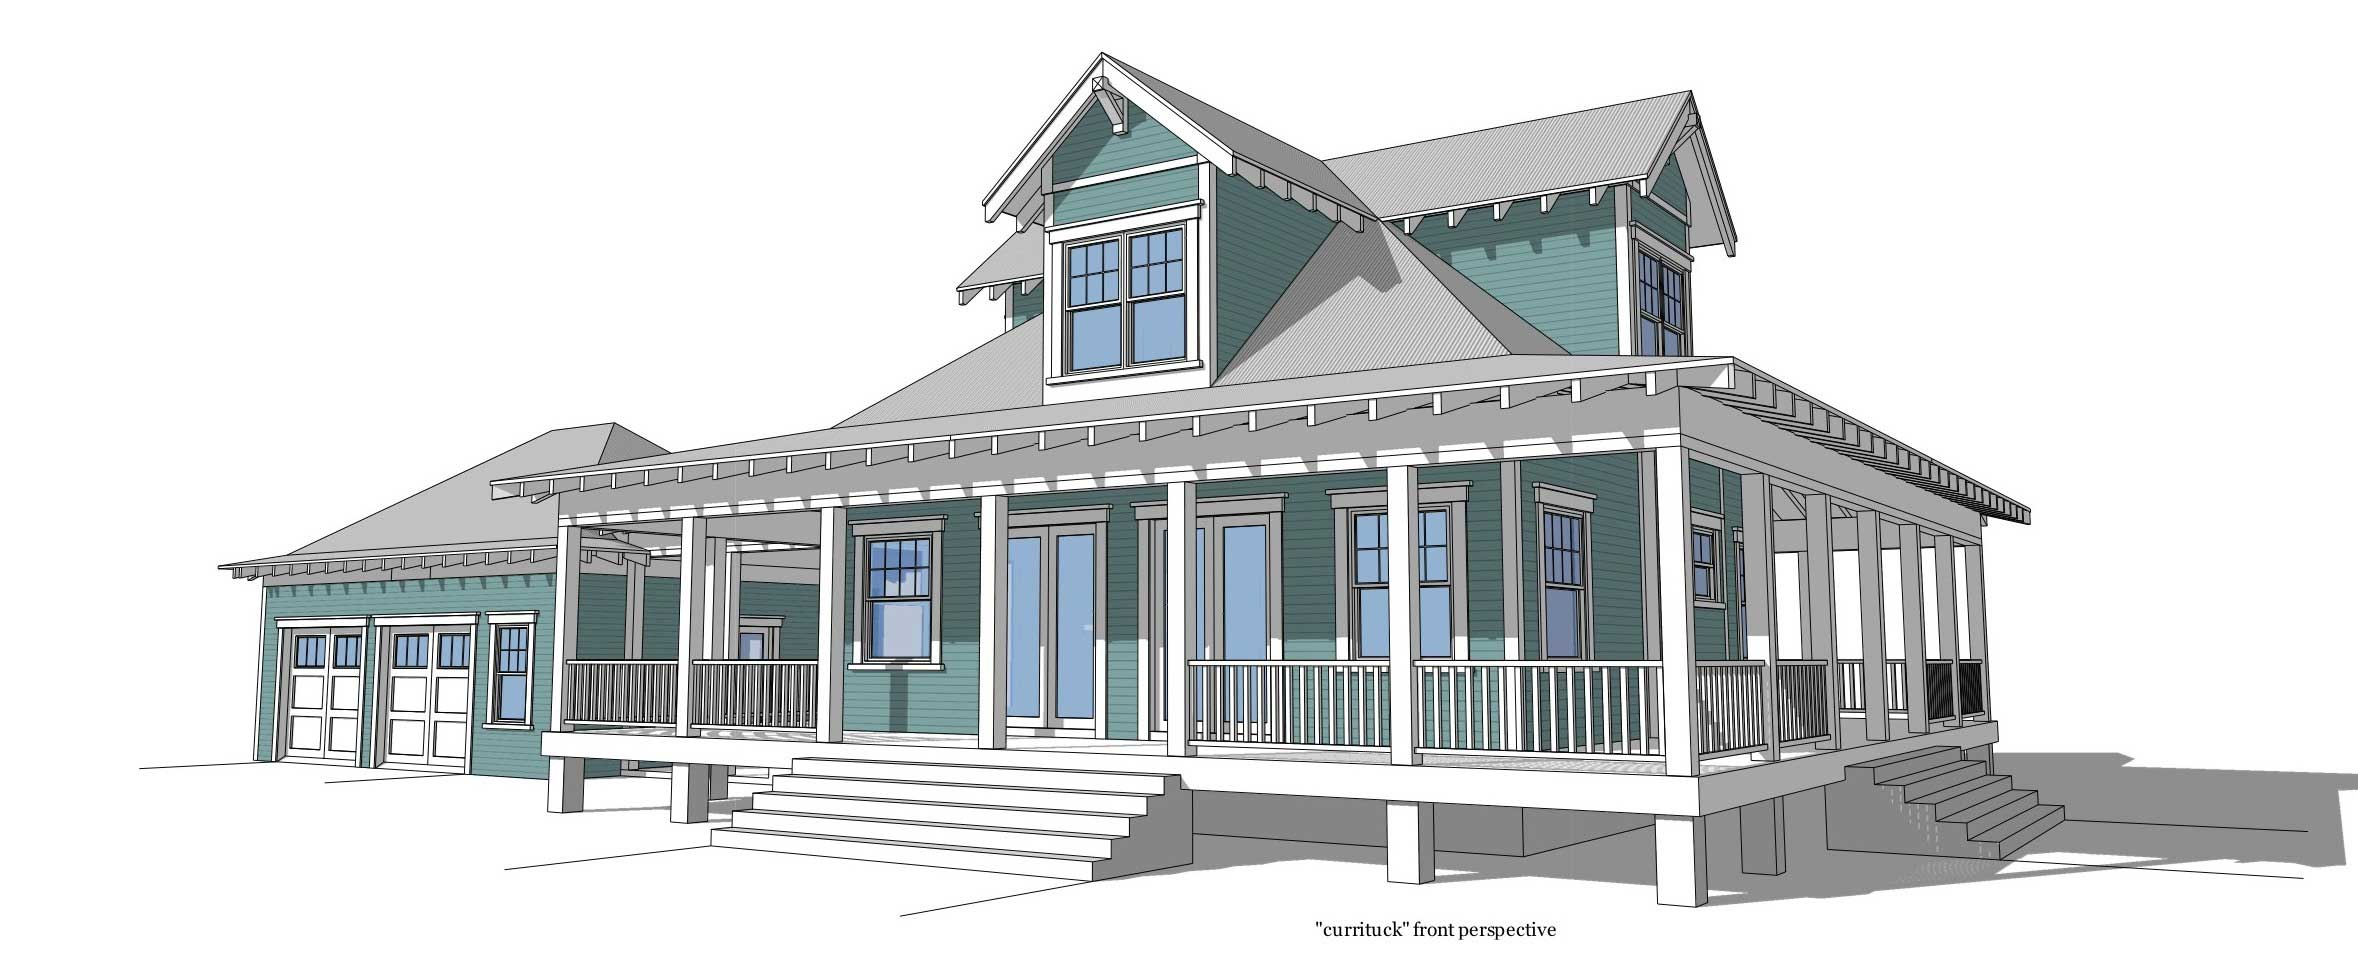 Coastal home plan 2 bedrms 2 baths 1527 sq ft 116 1014 for Beach house elevation designs